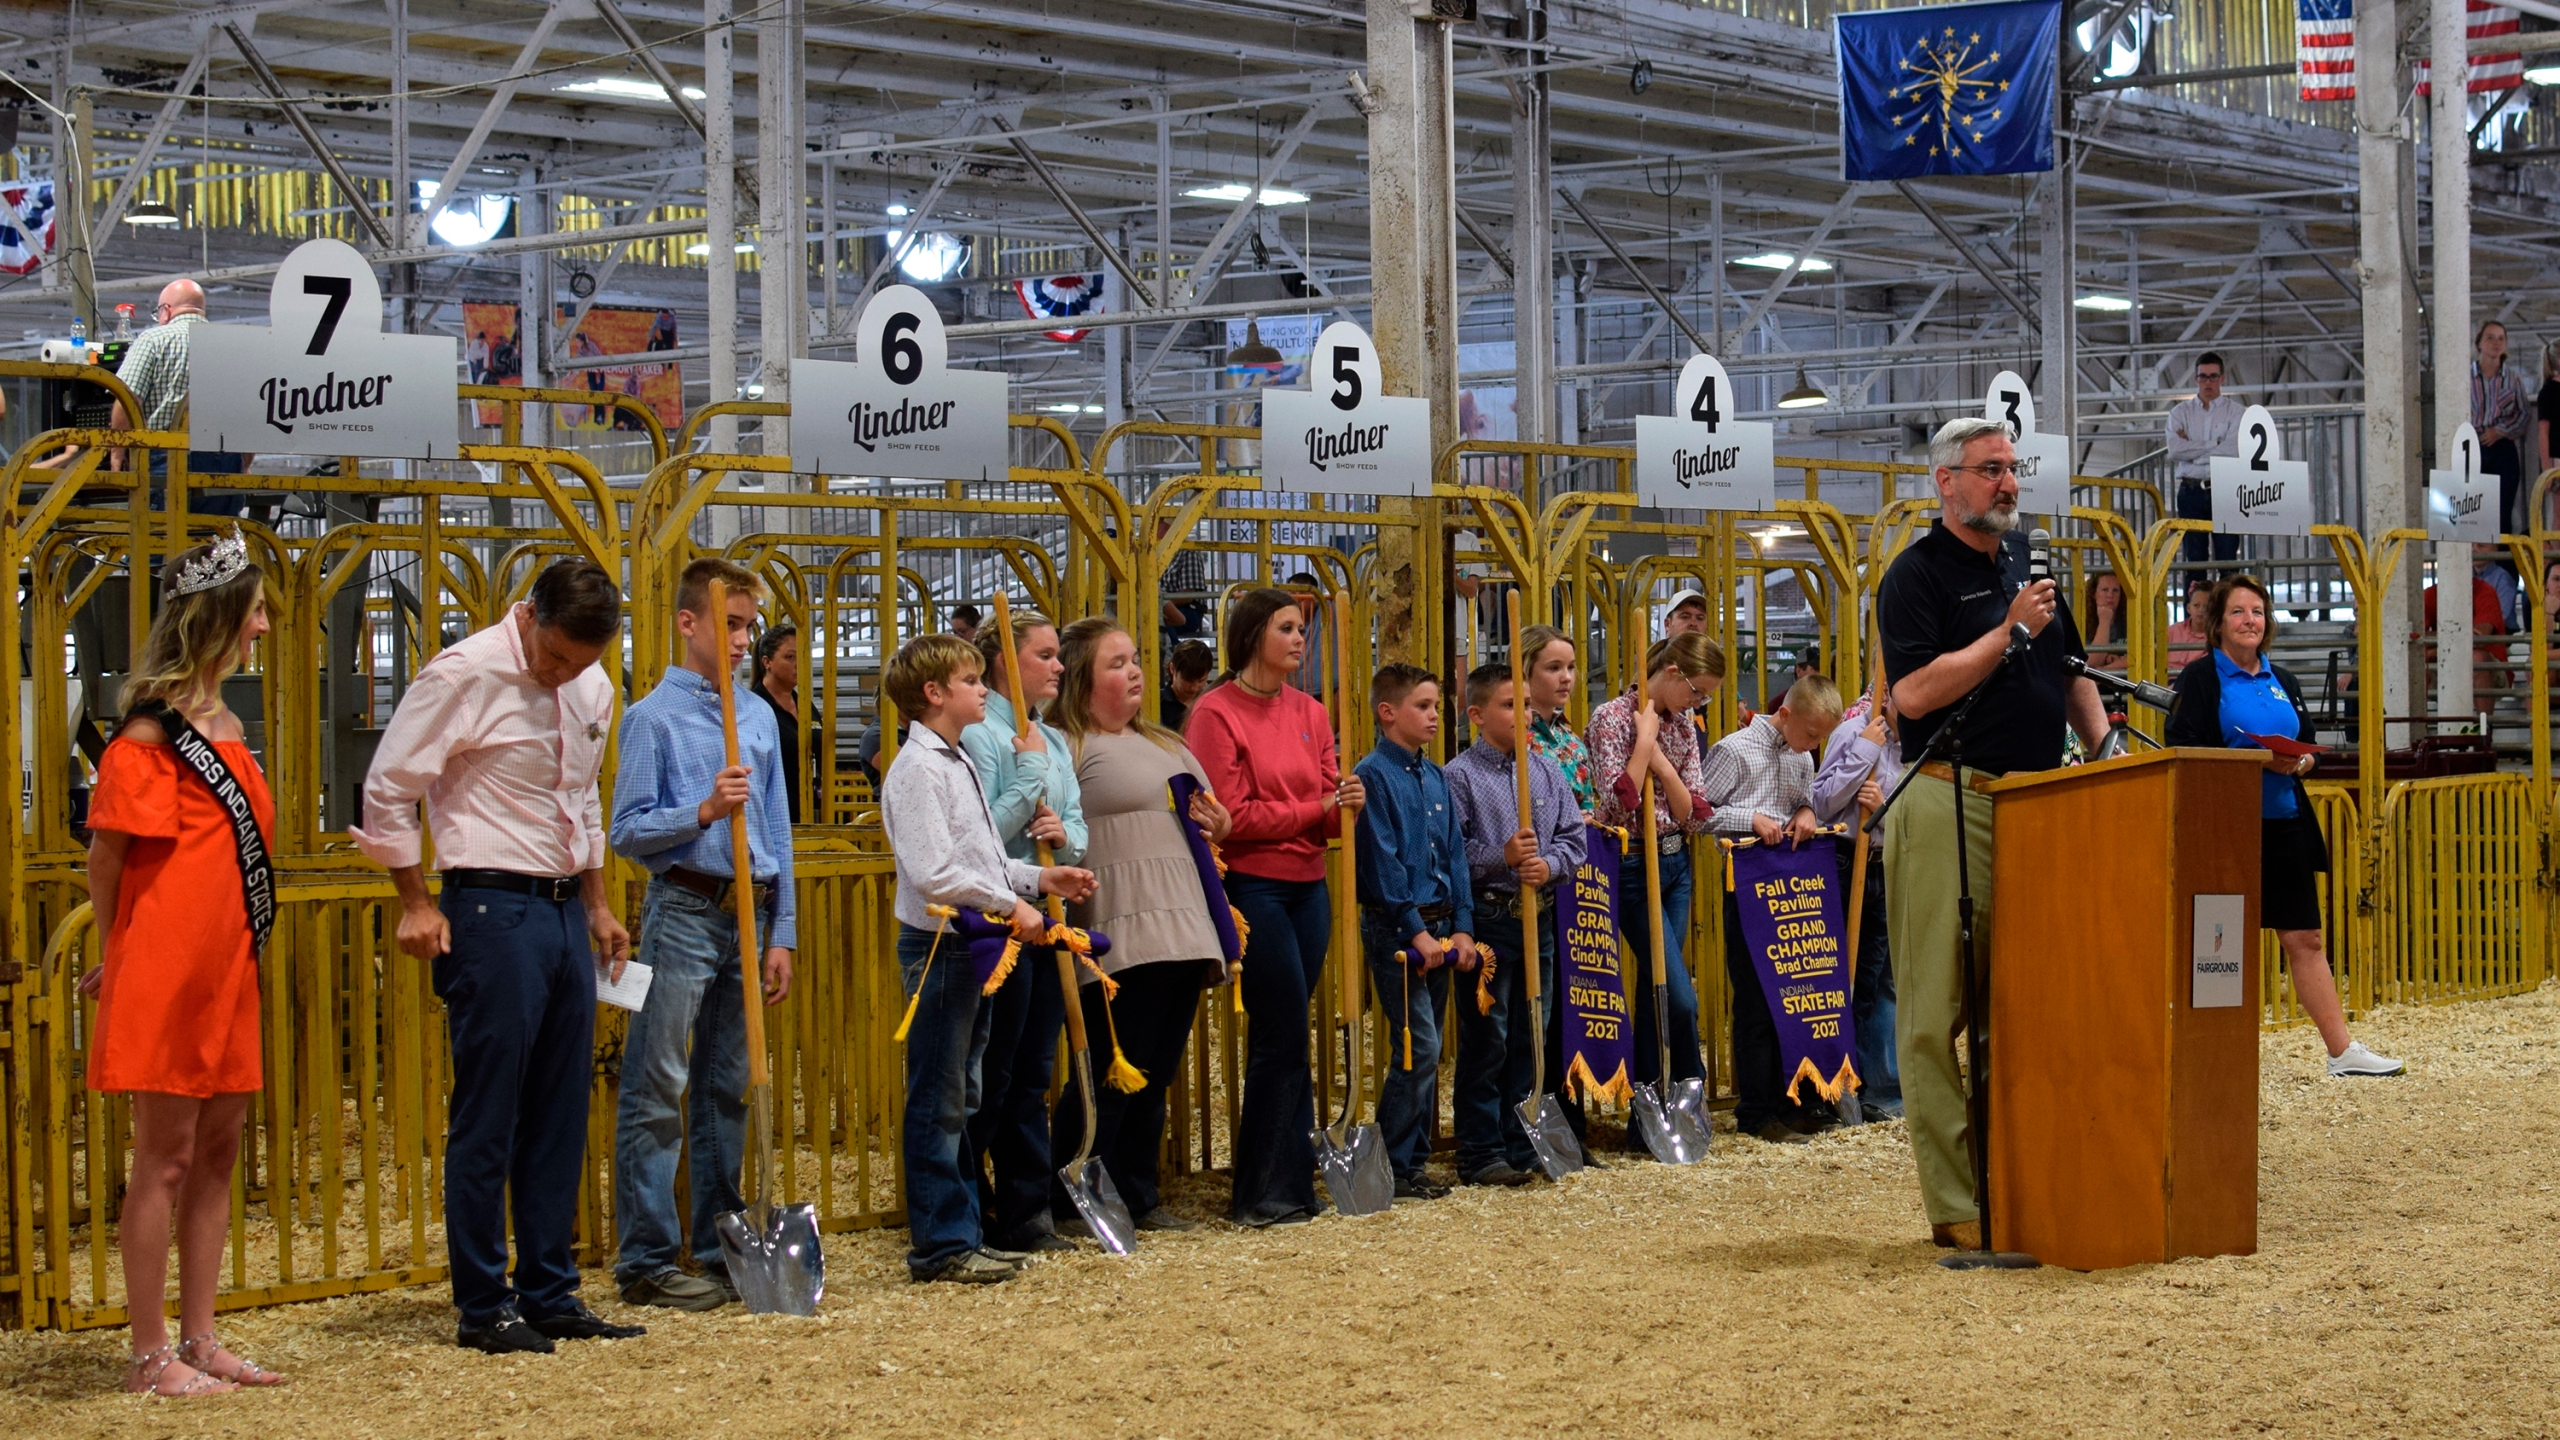 Indiana Gov. Eric Holcomb speaks at the groundbreaking for the Indiana State Fairgrounds' new Fall Creek Pavilion, which will replace the century-old Swine Barn on Friday, Aug. 6, 2021 in Indianapolis.